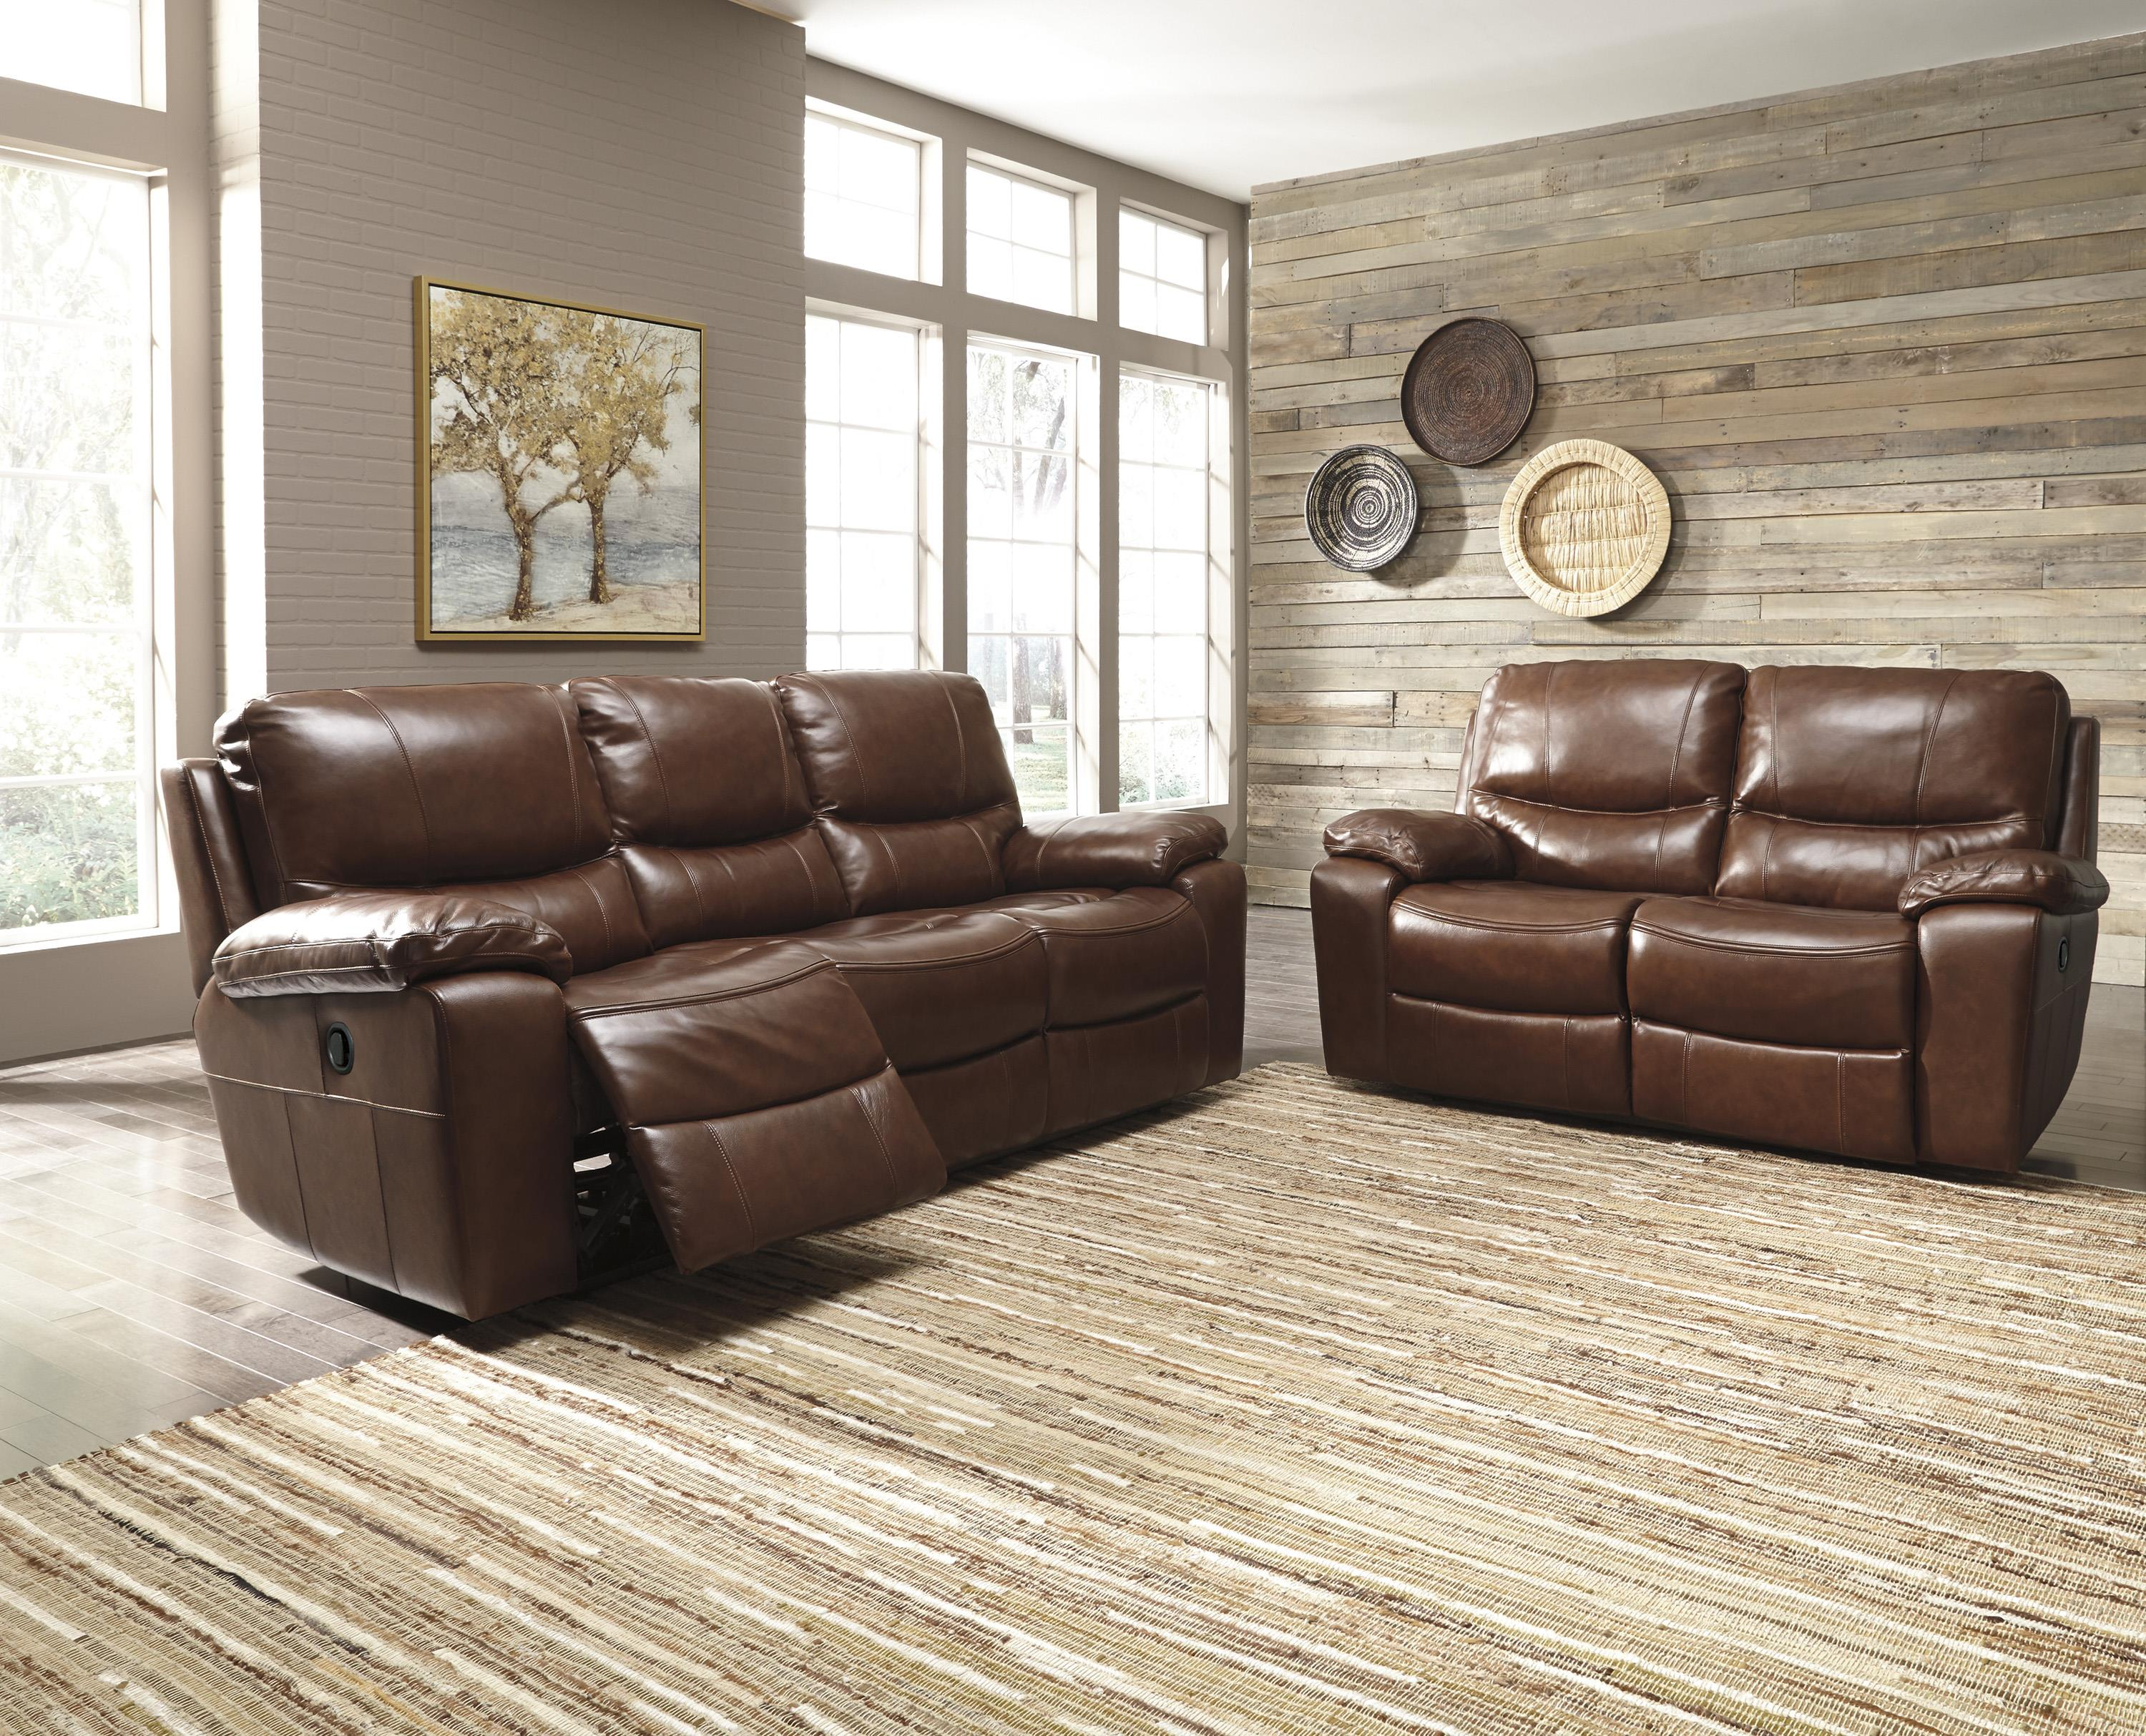 Signature Design by Ashley Panache Reclining Living Room Group - Item Number: U72900 Living Room Group 1